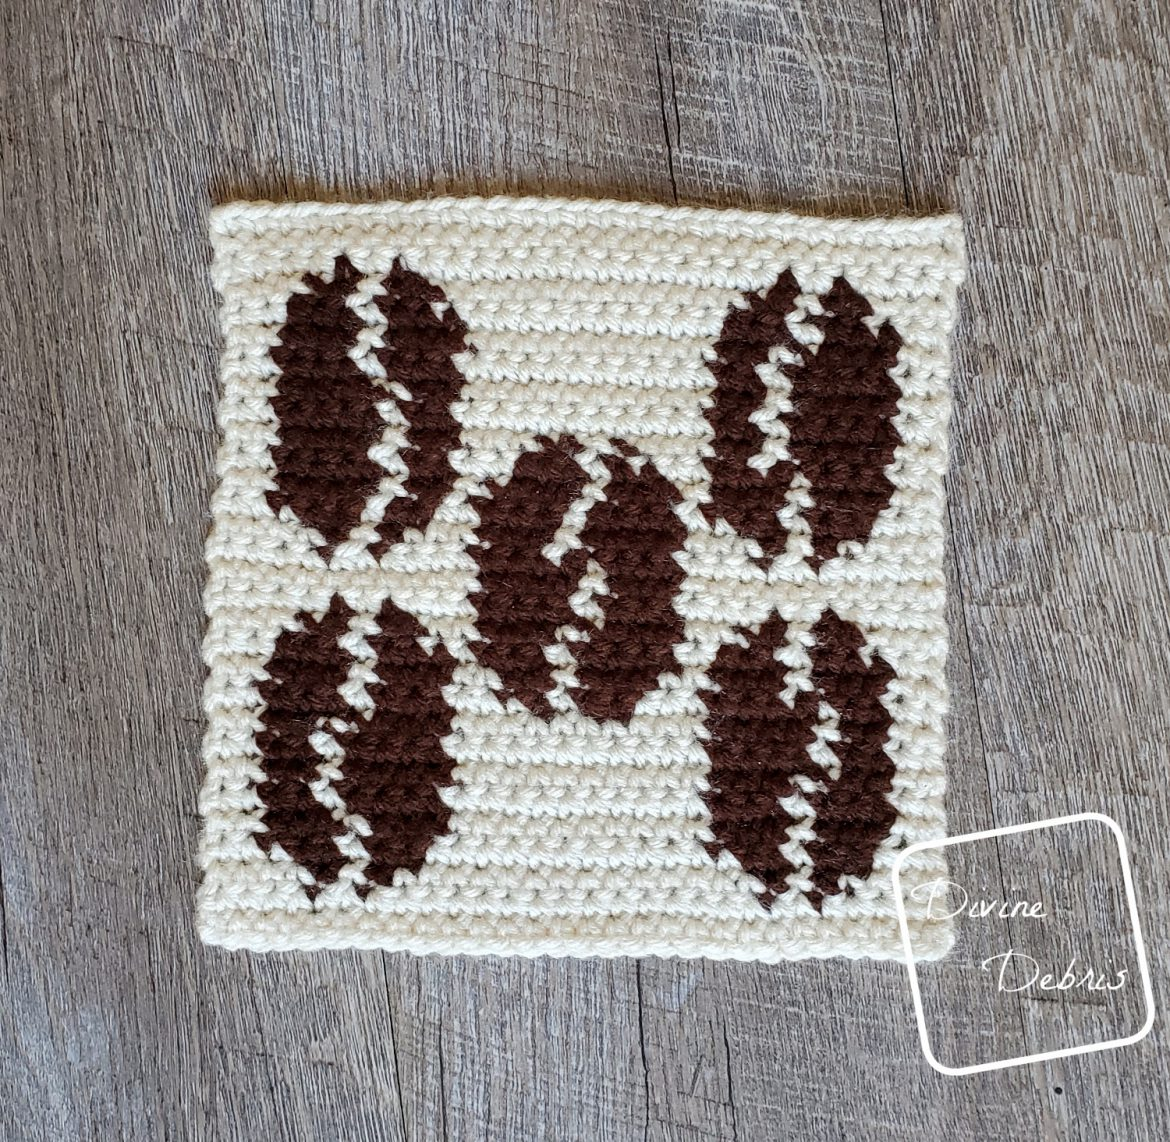 Learn to make an 8″ Tapestry Coffee Beans Afghan Square from a free crochet pattern by DivineDebris.com